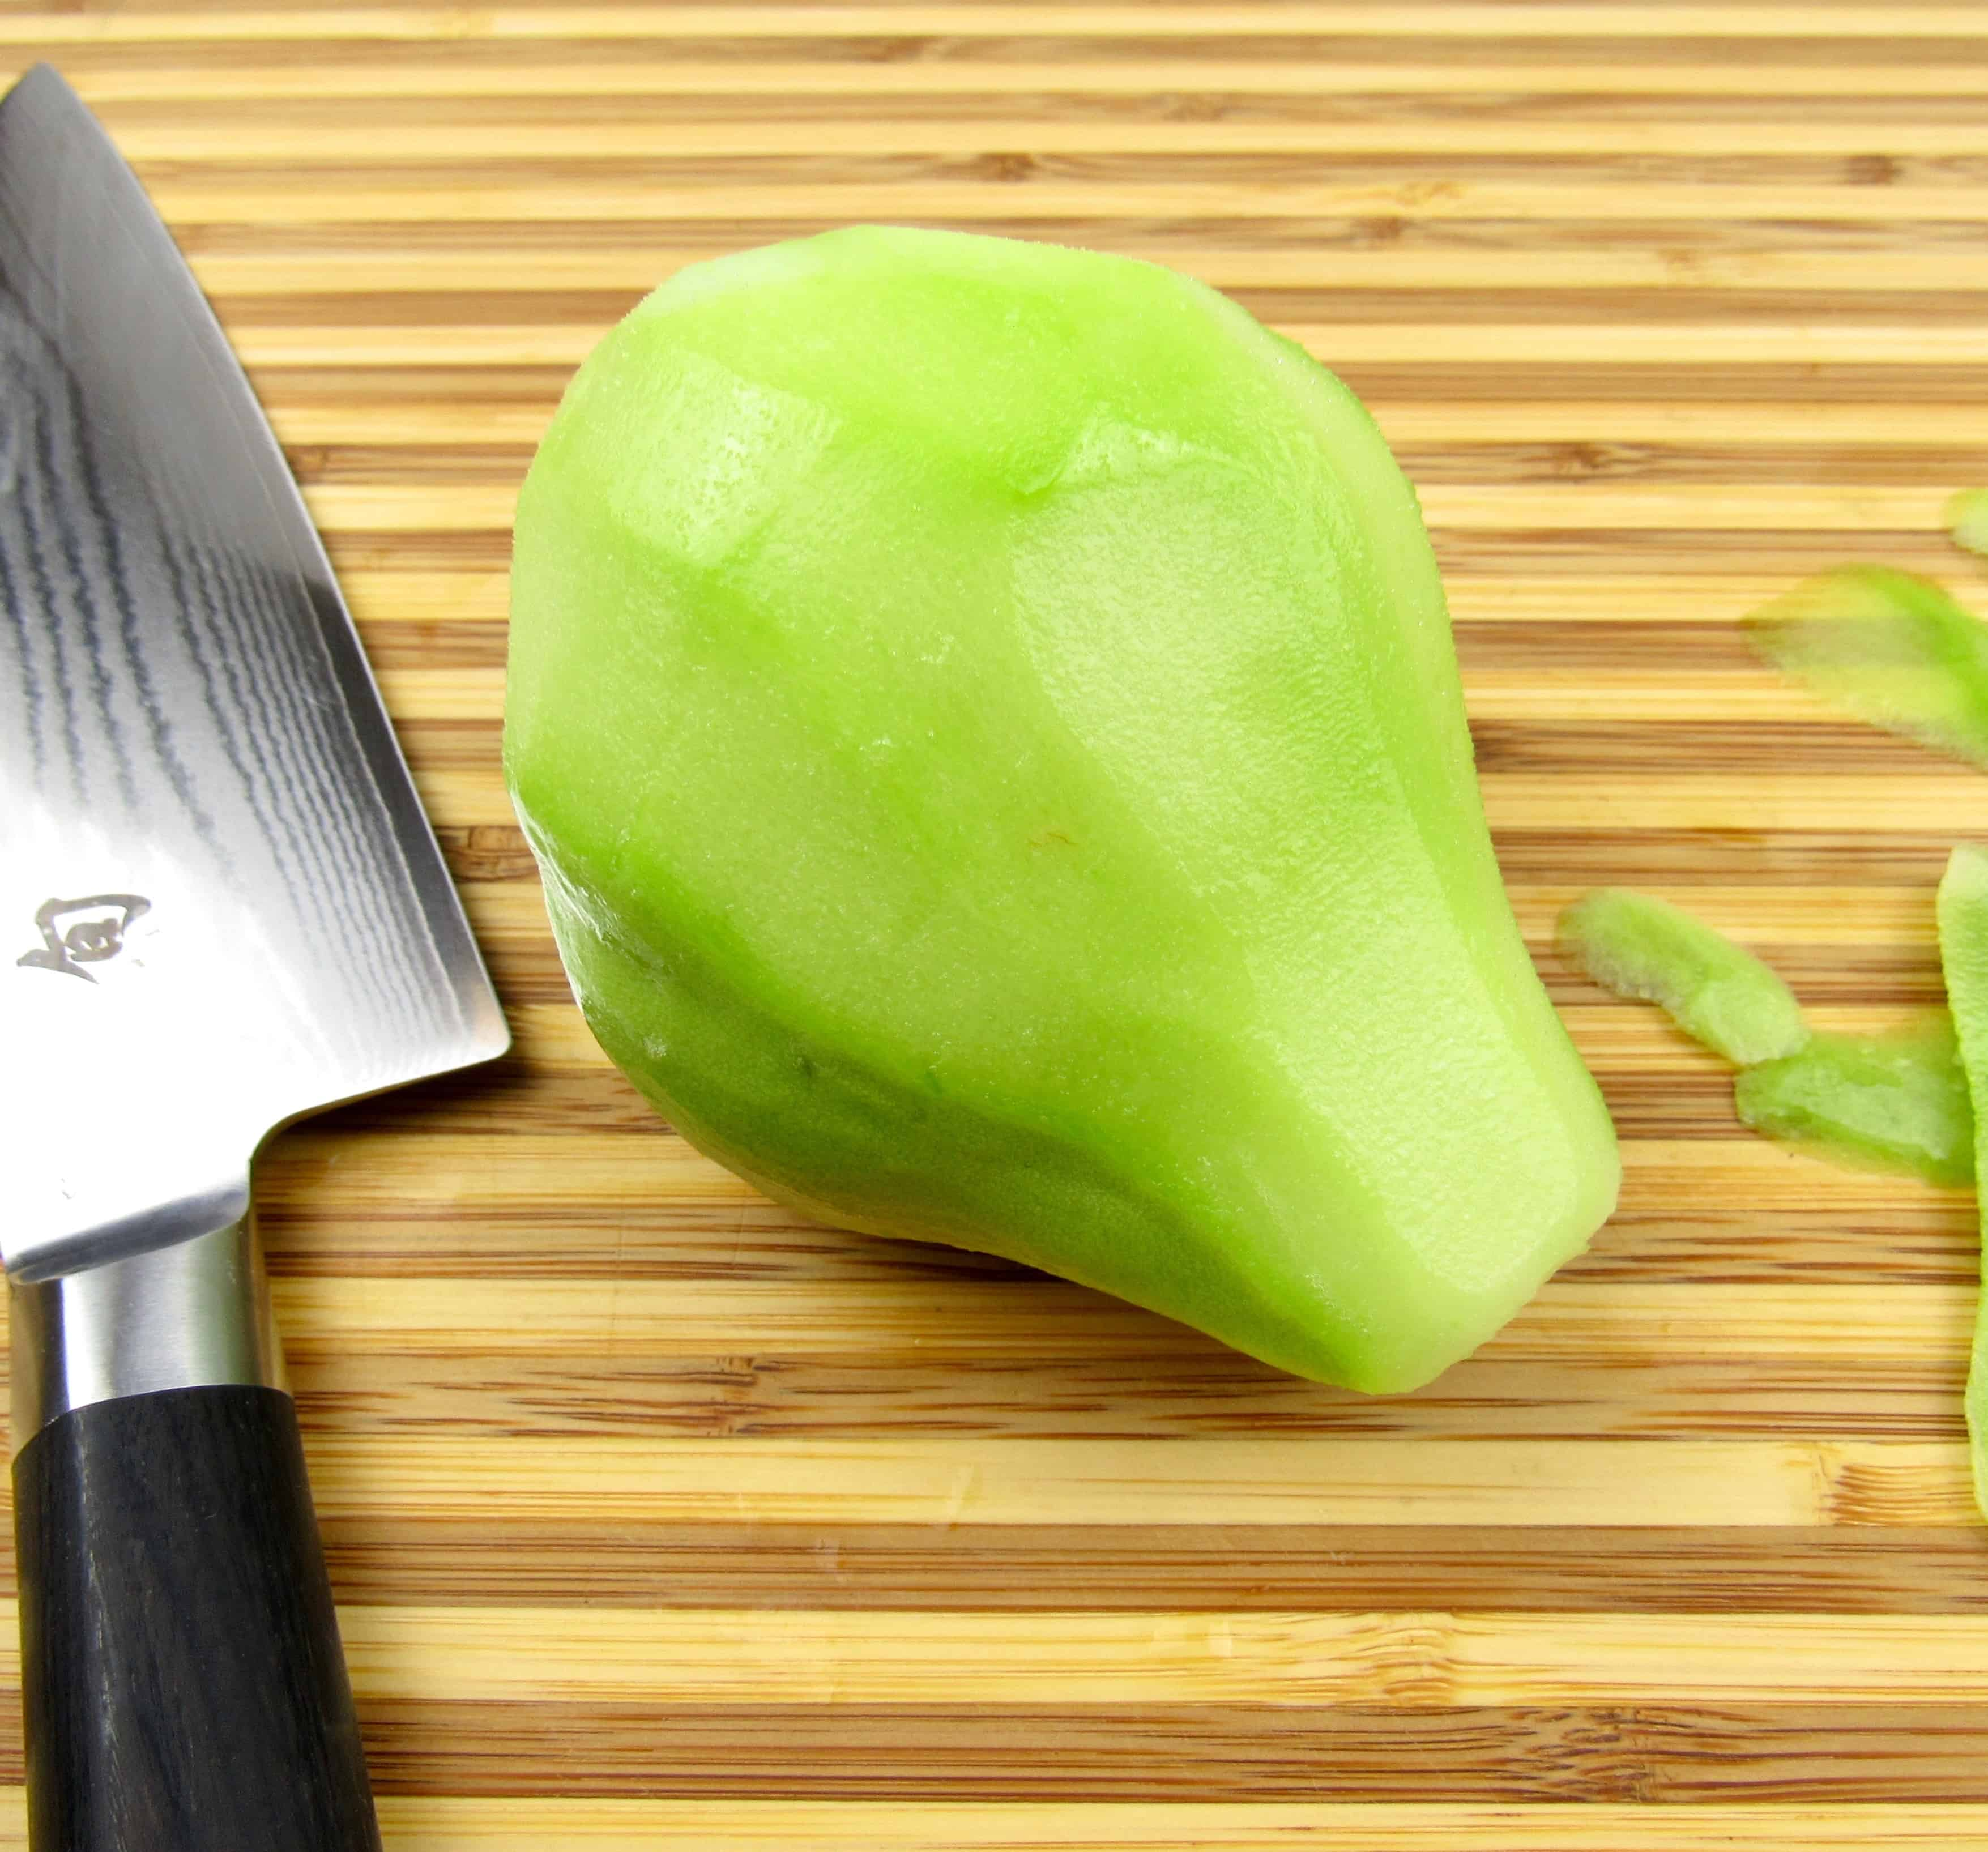 peeled chayote squash on butting board with knife